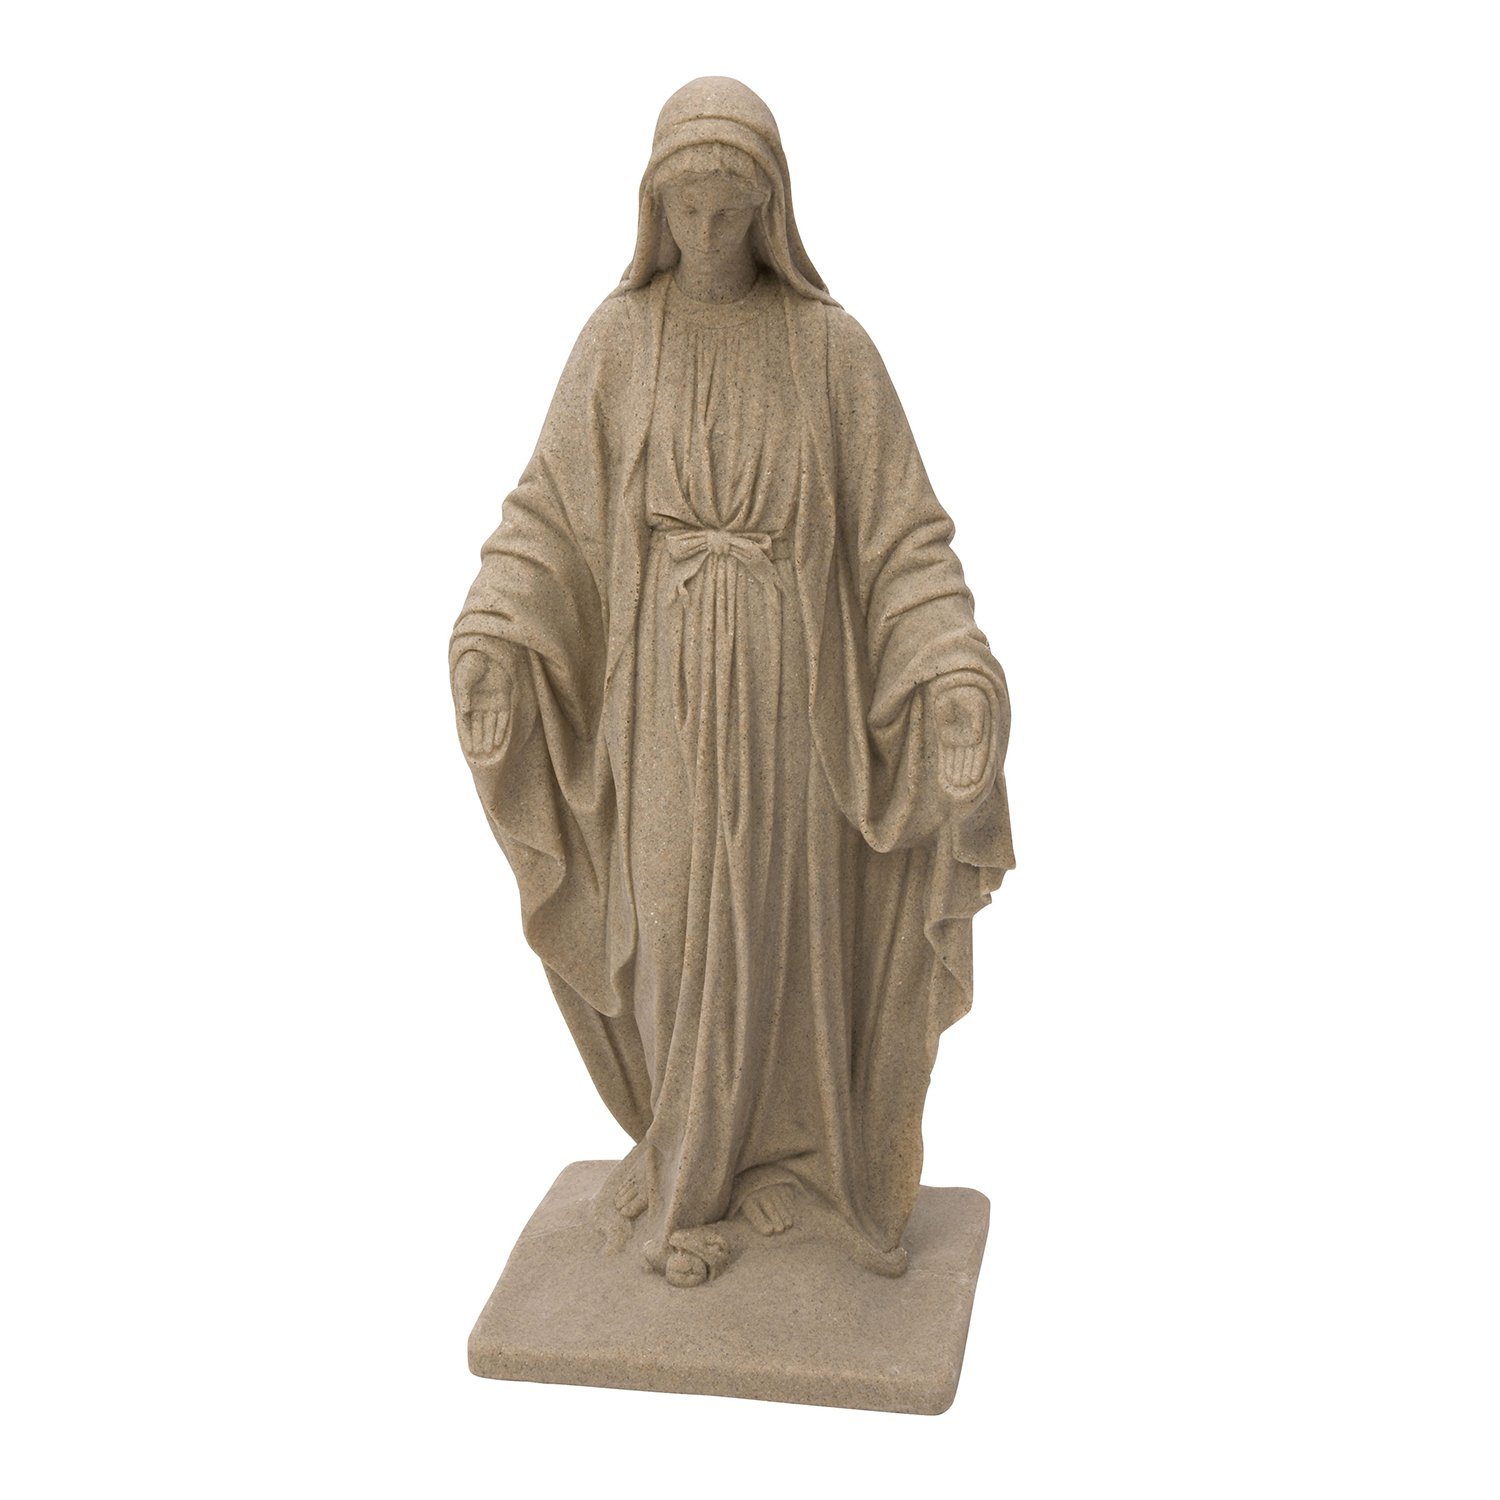 "Emsco Group Virgin Mary Statue - Natural Sandstone Appearance - Made of Resin - Lightweight - 34"" Height"